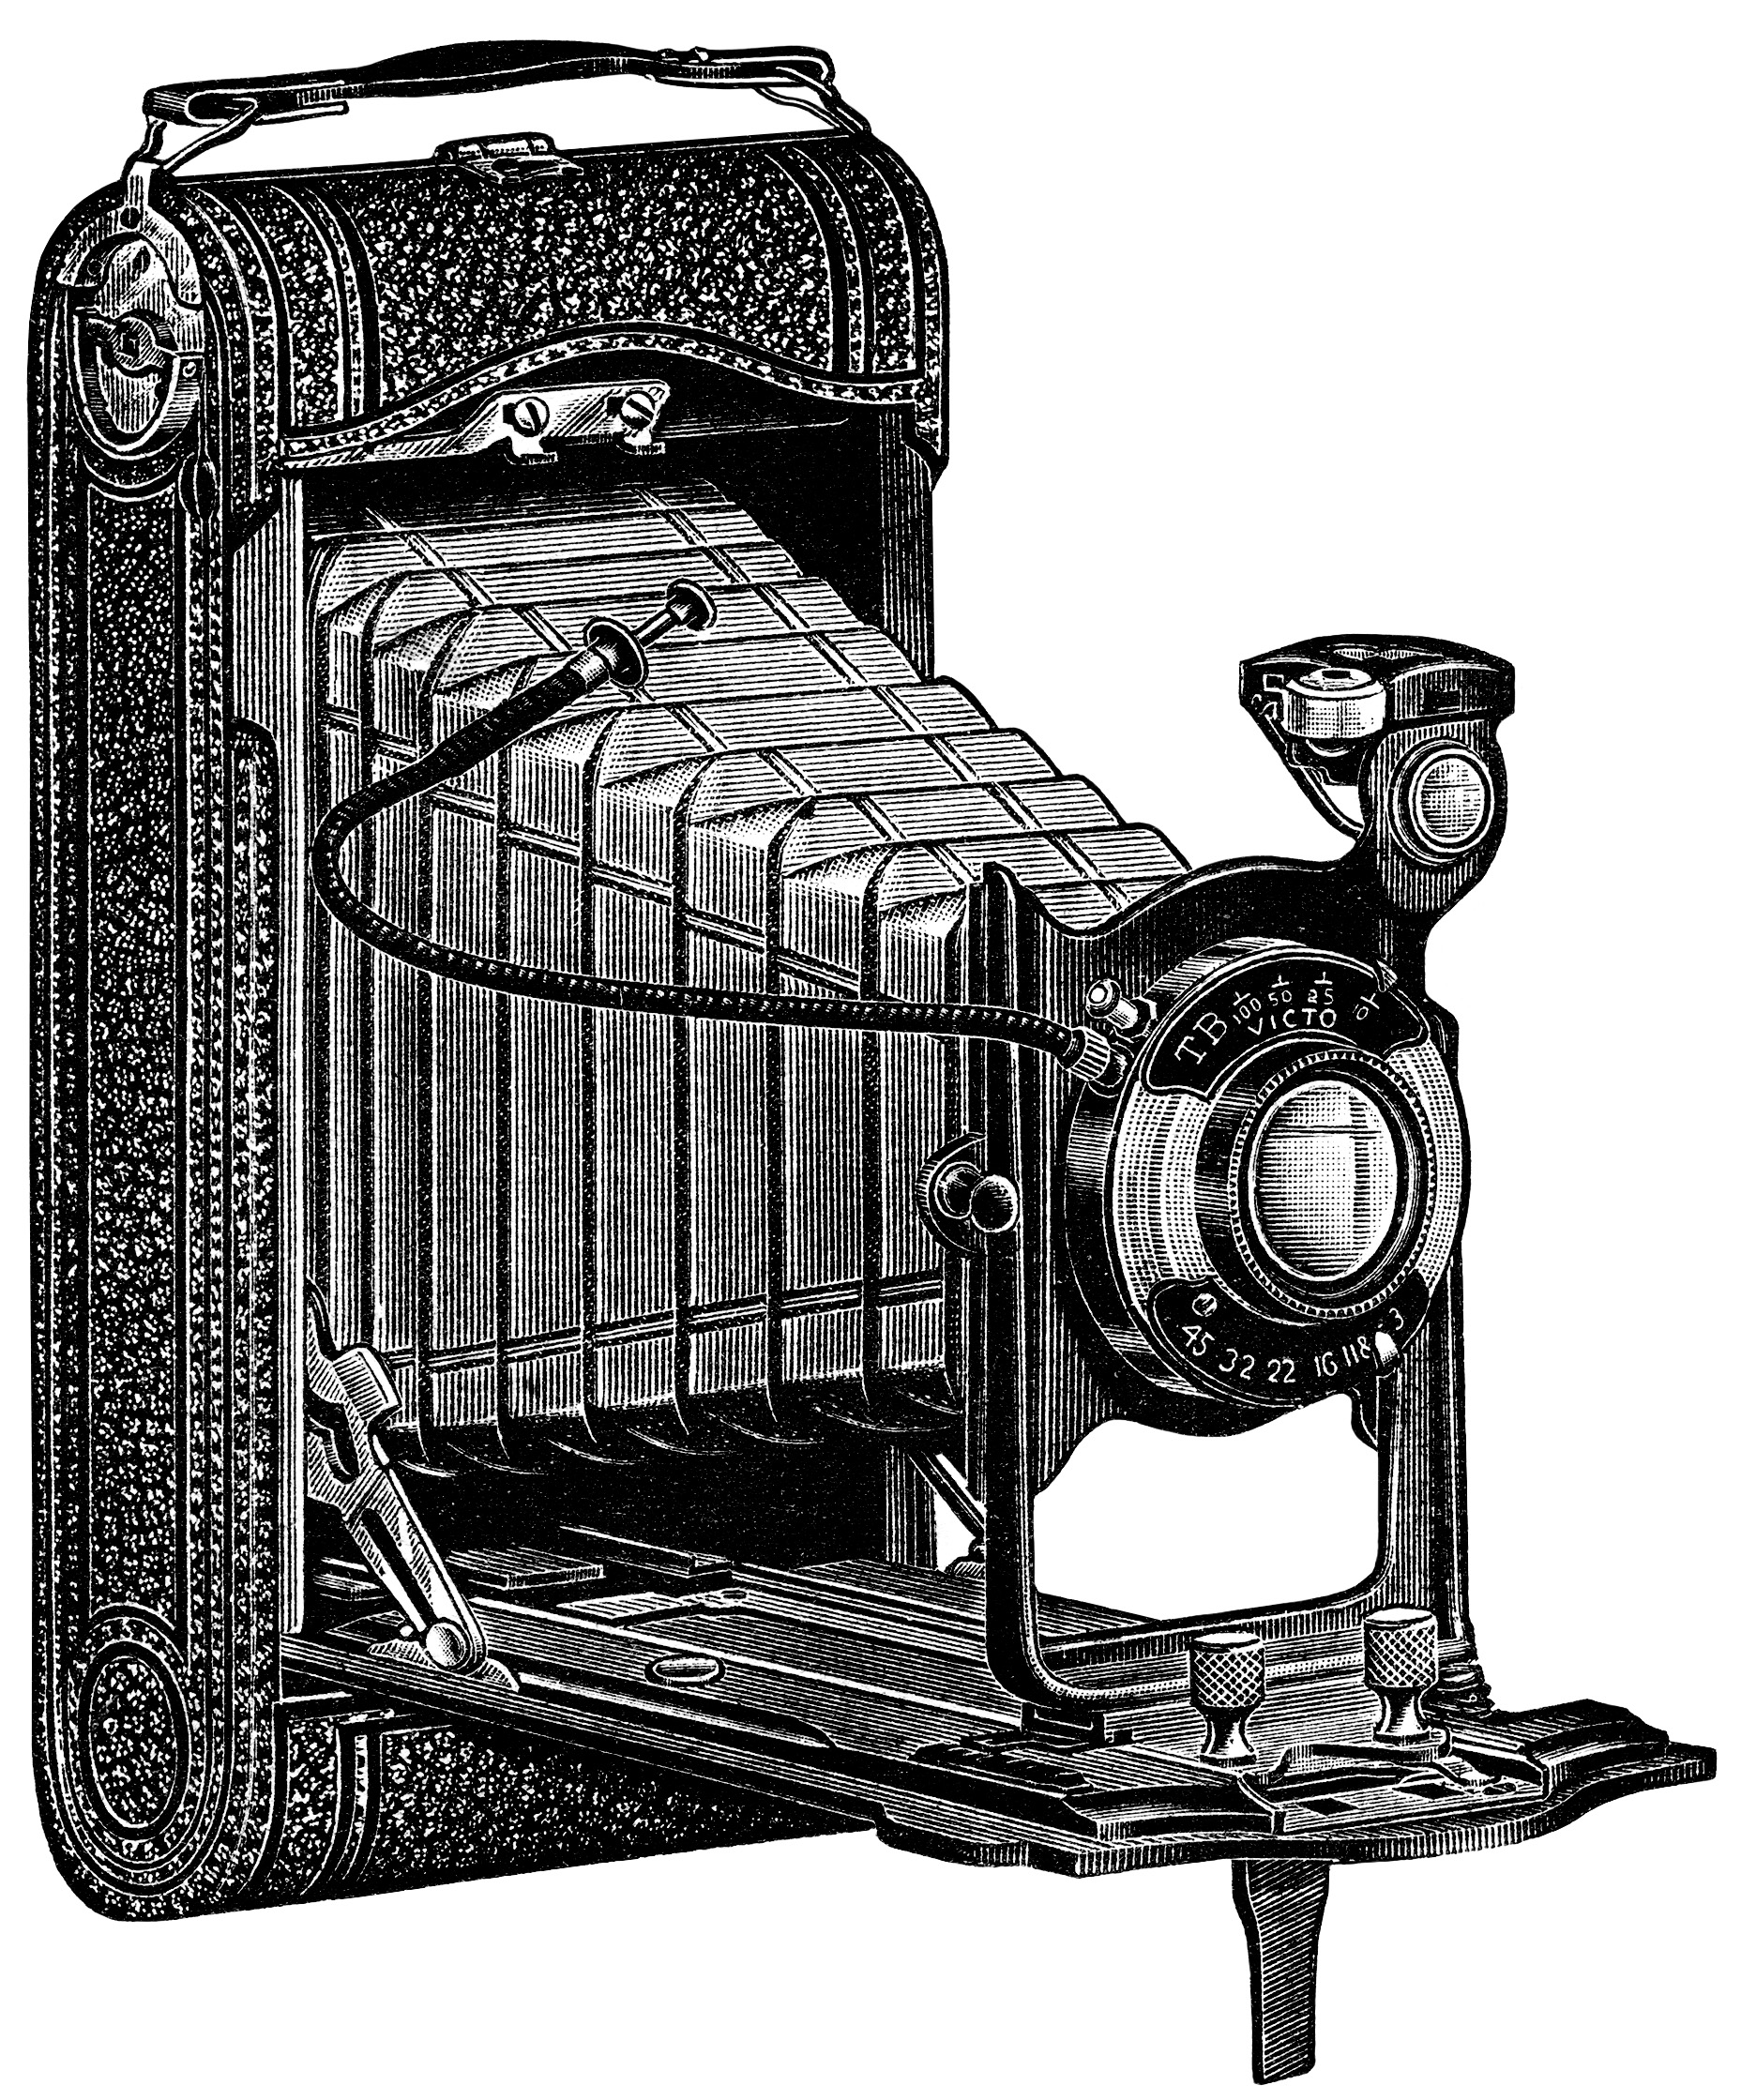 Aged Paper Ephemera Old Catalogue Page Black And White Clipart Antique Camera Illustration